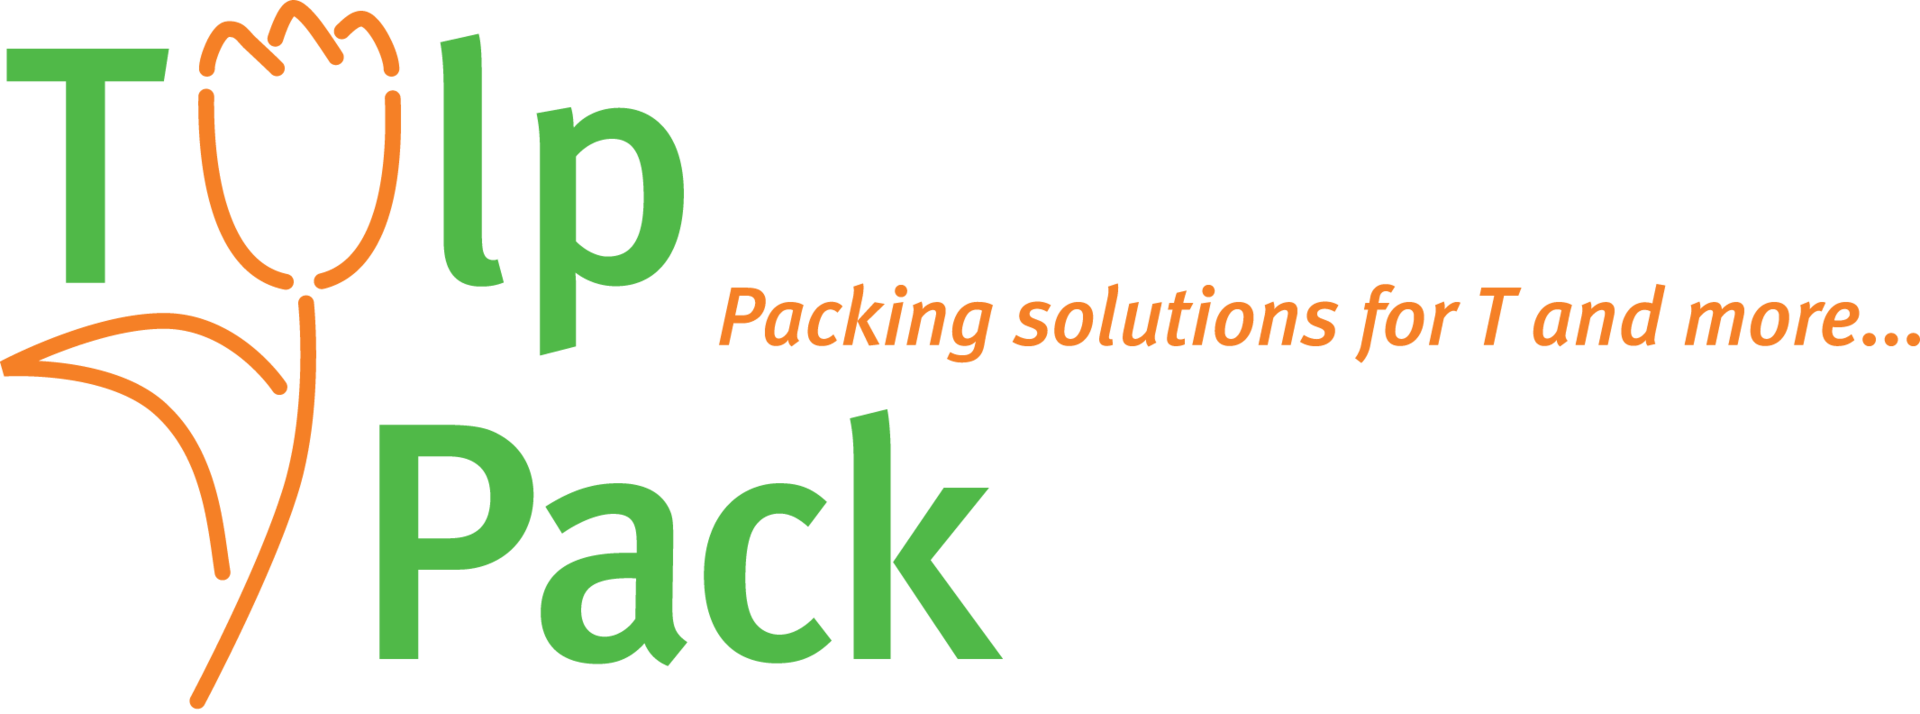 Tulppack packing materials, machines and spare parts for pyramid tea bag packing machines webshop